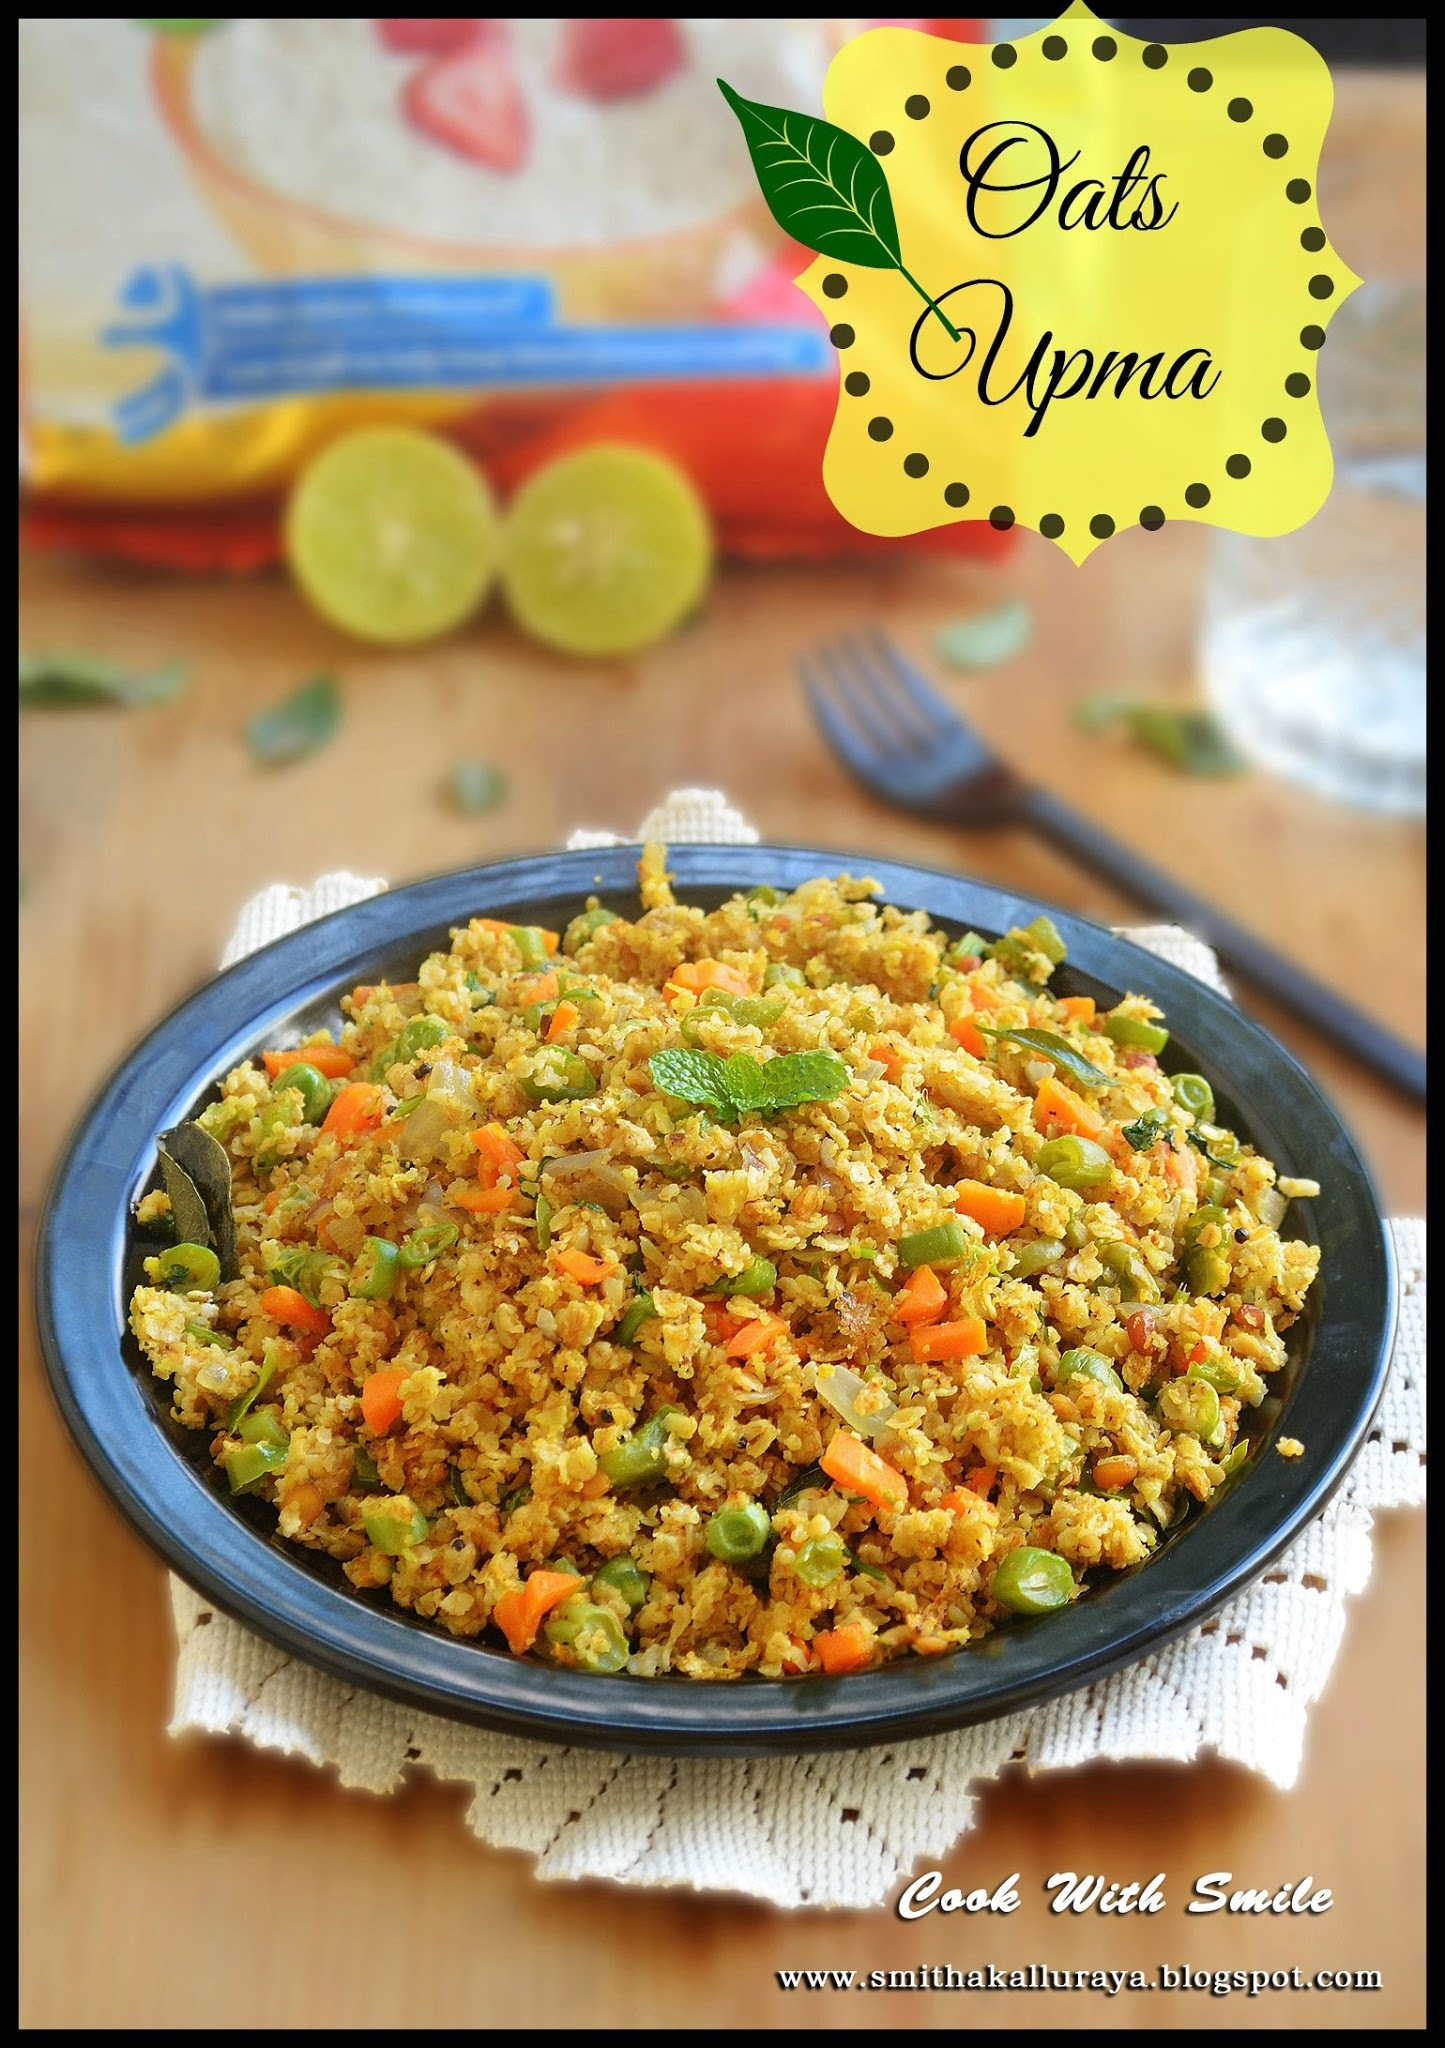 OATS UPMA / INSTANT VEGETABLE OATS UPMA RECIPE